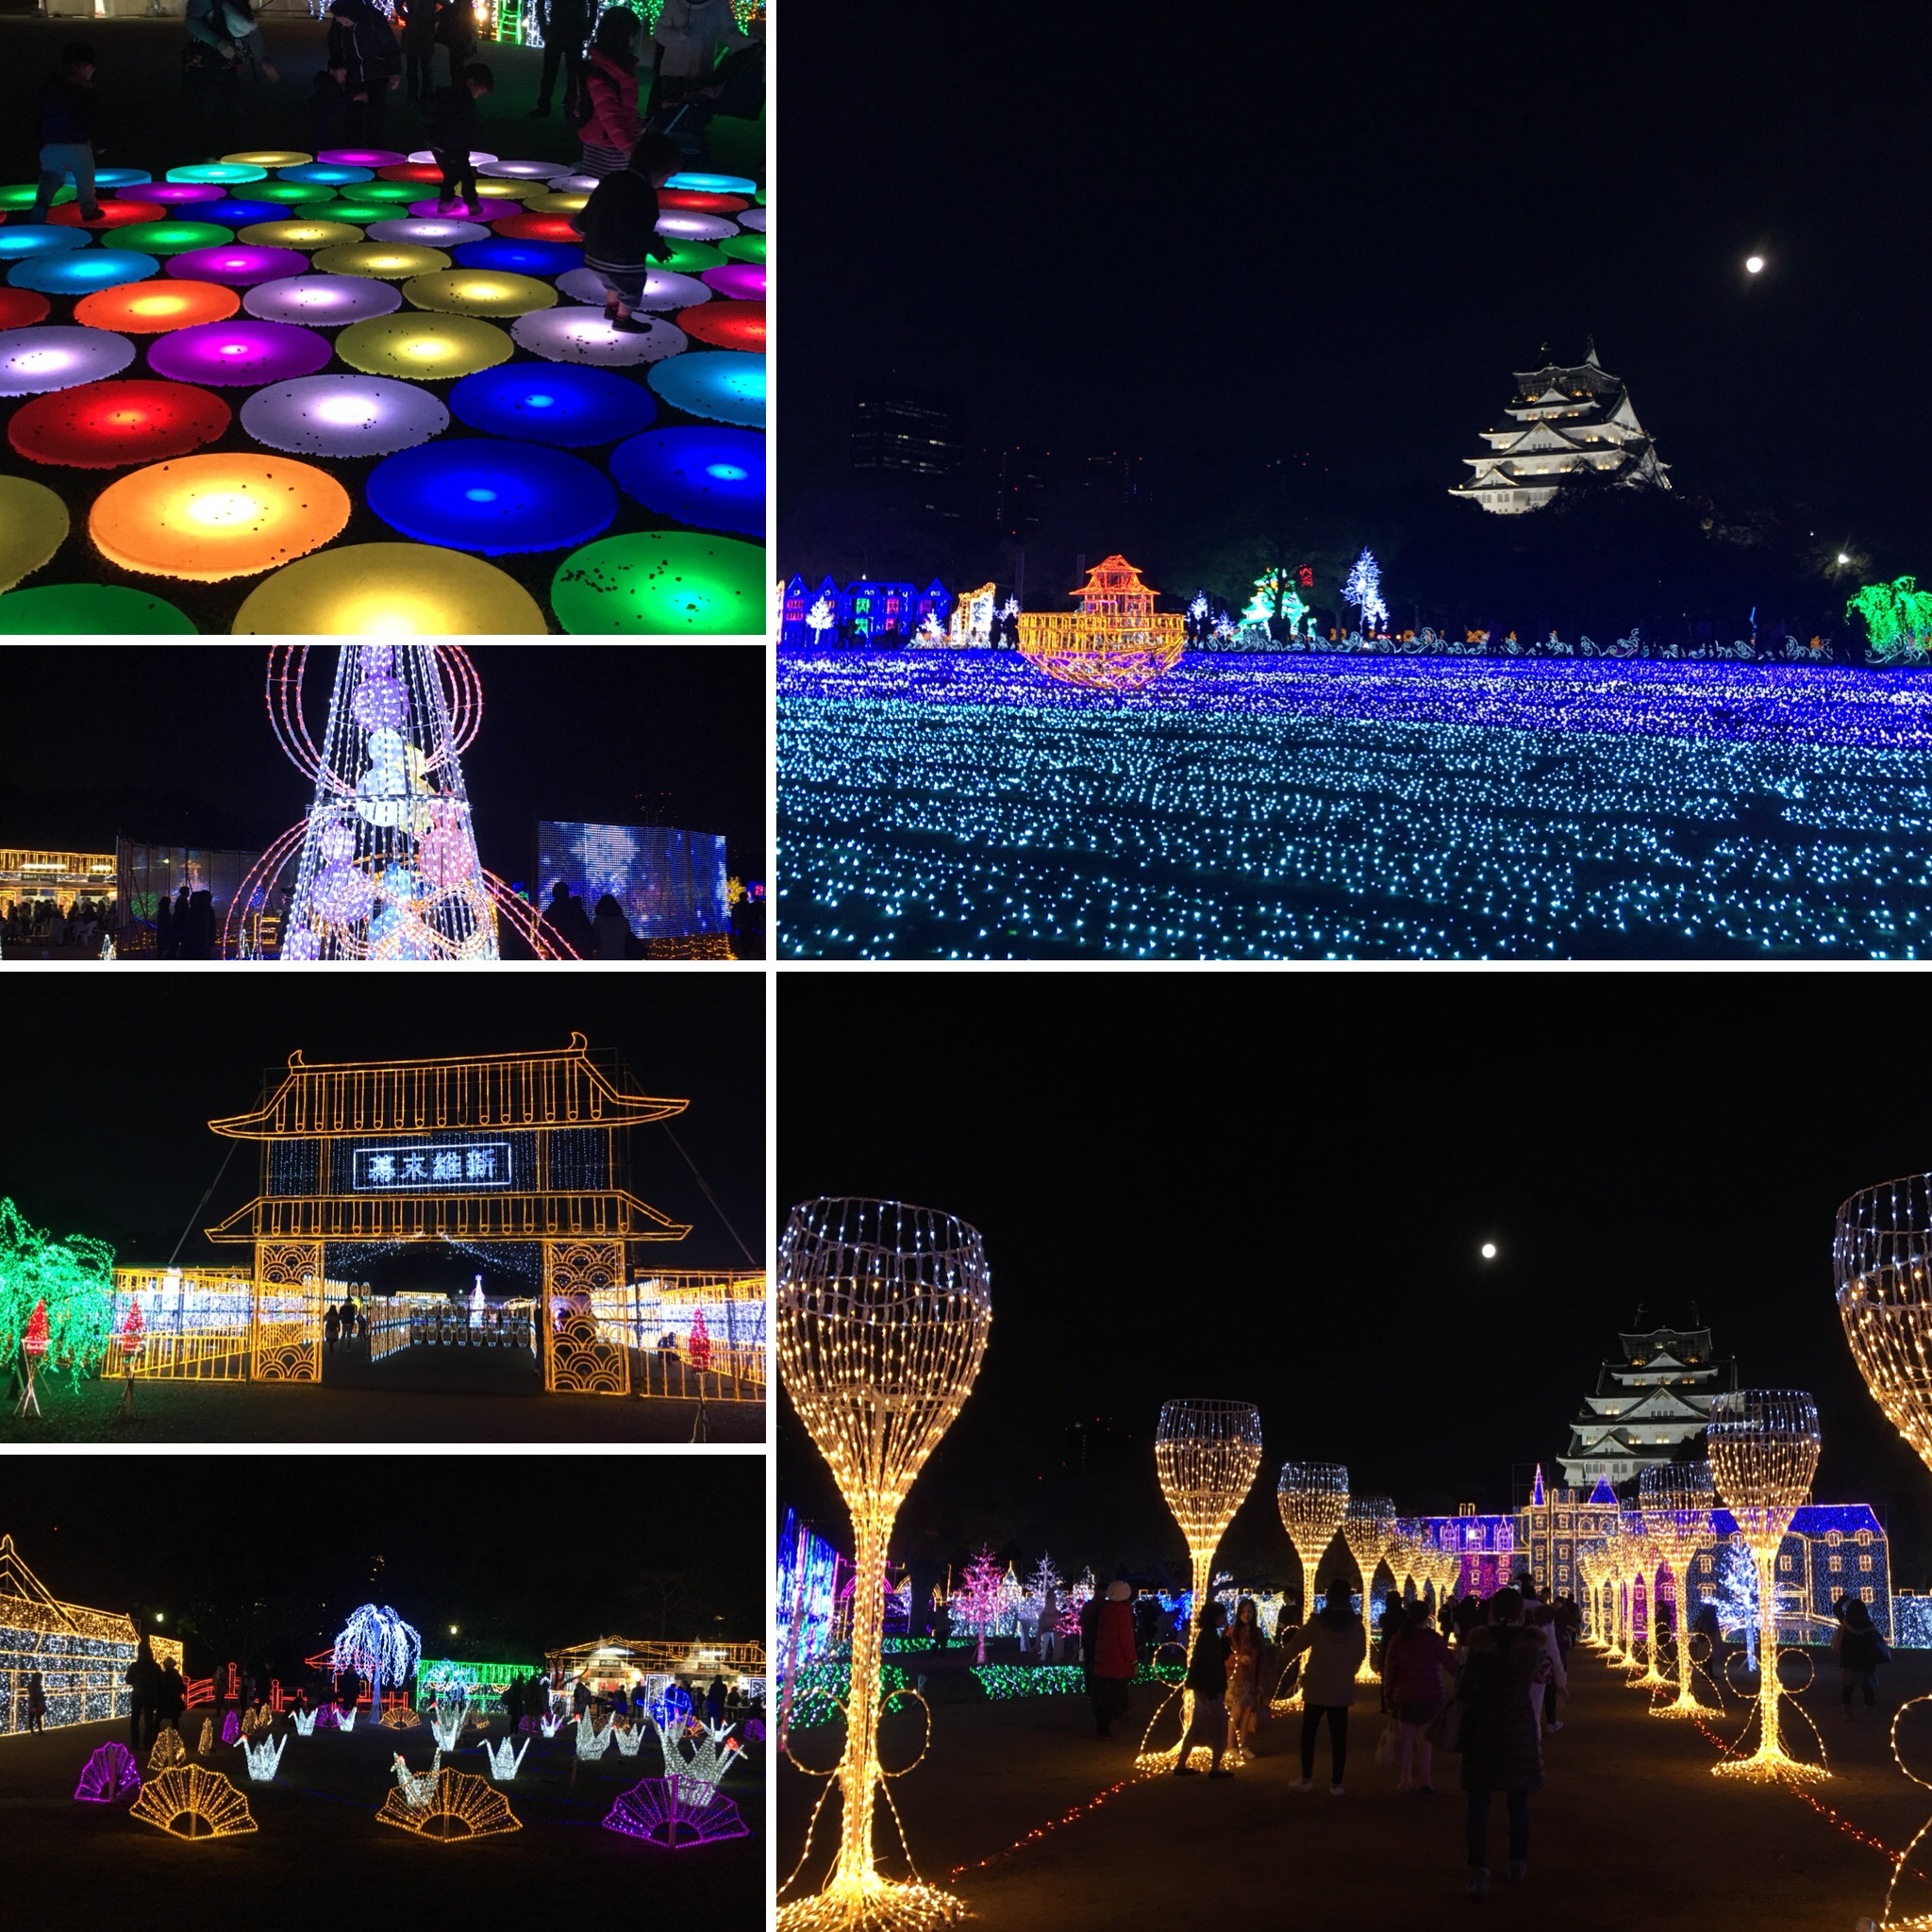 collage of different brightly colored illuminations at osaka castle